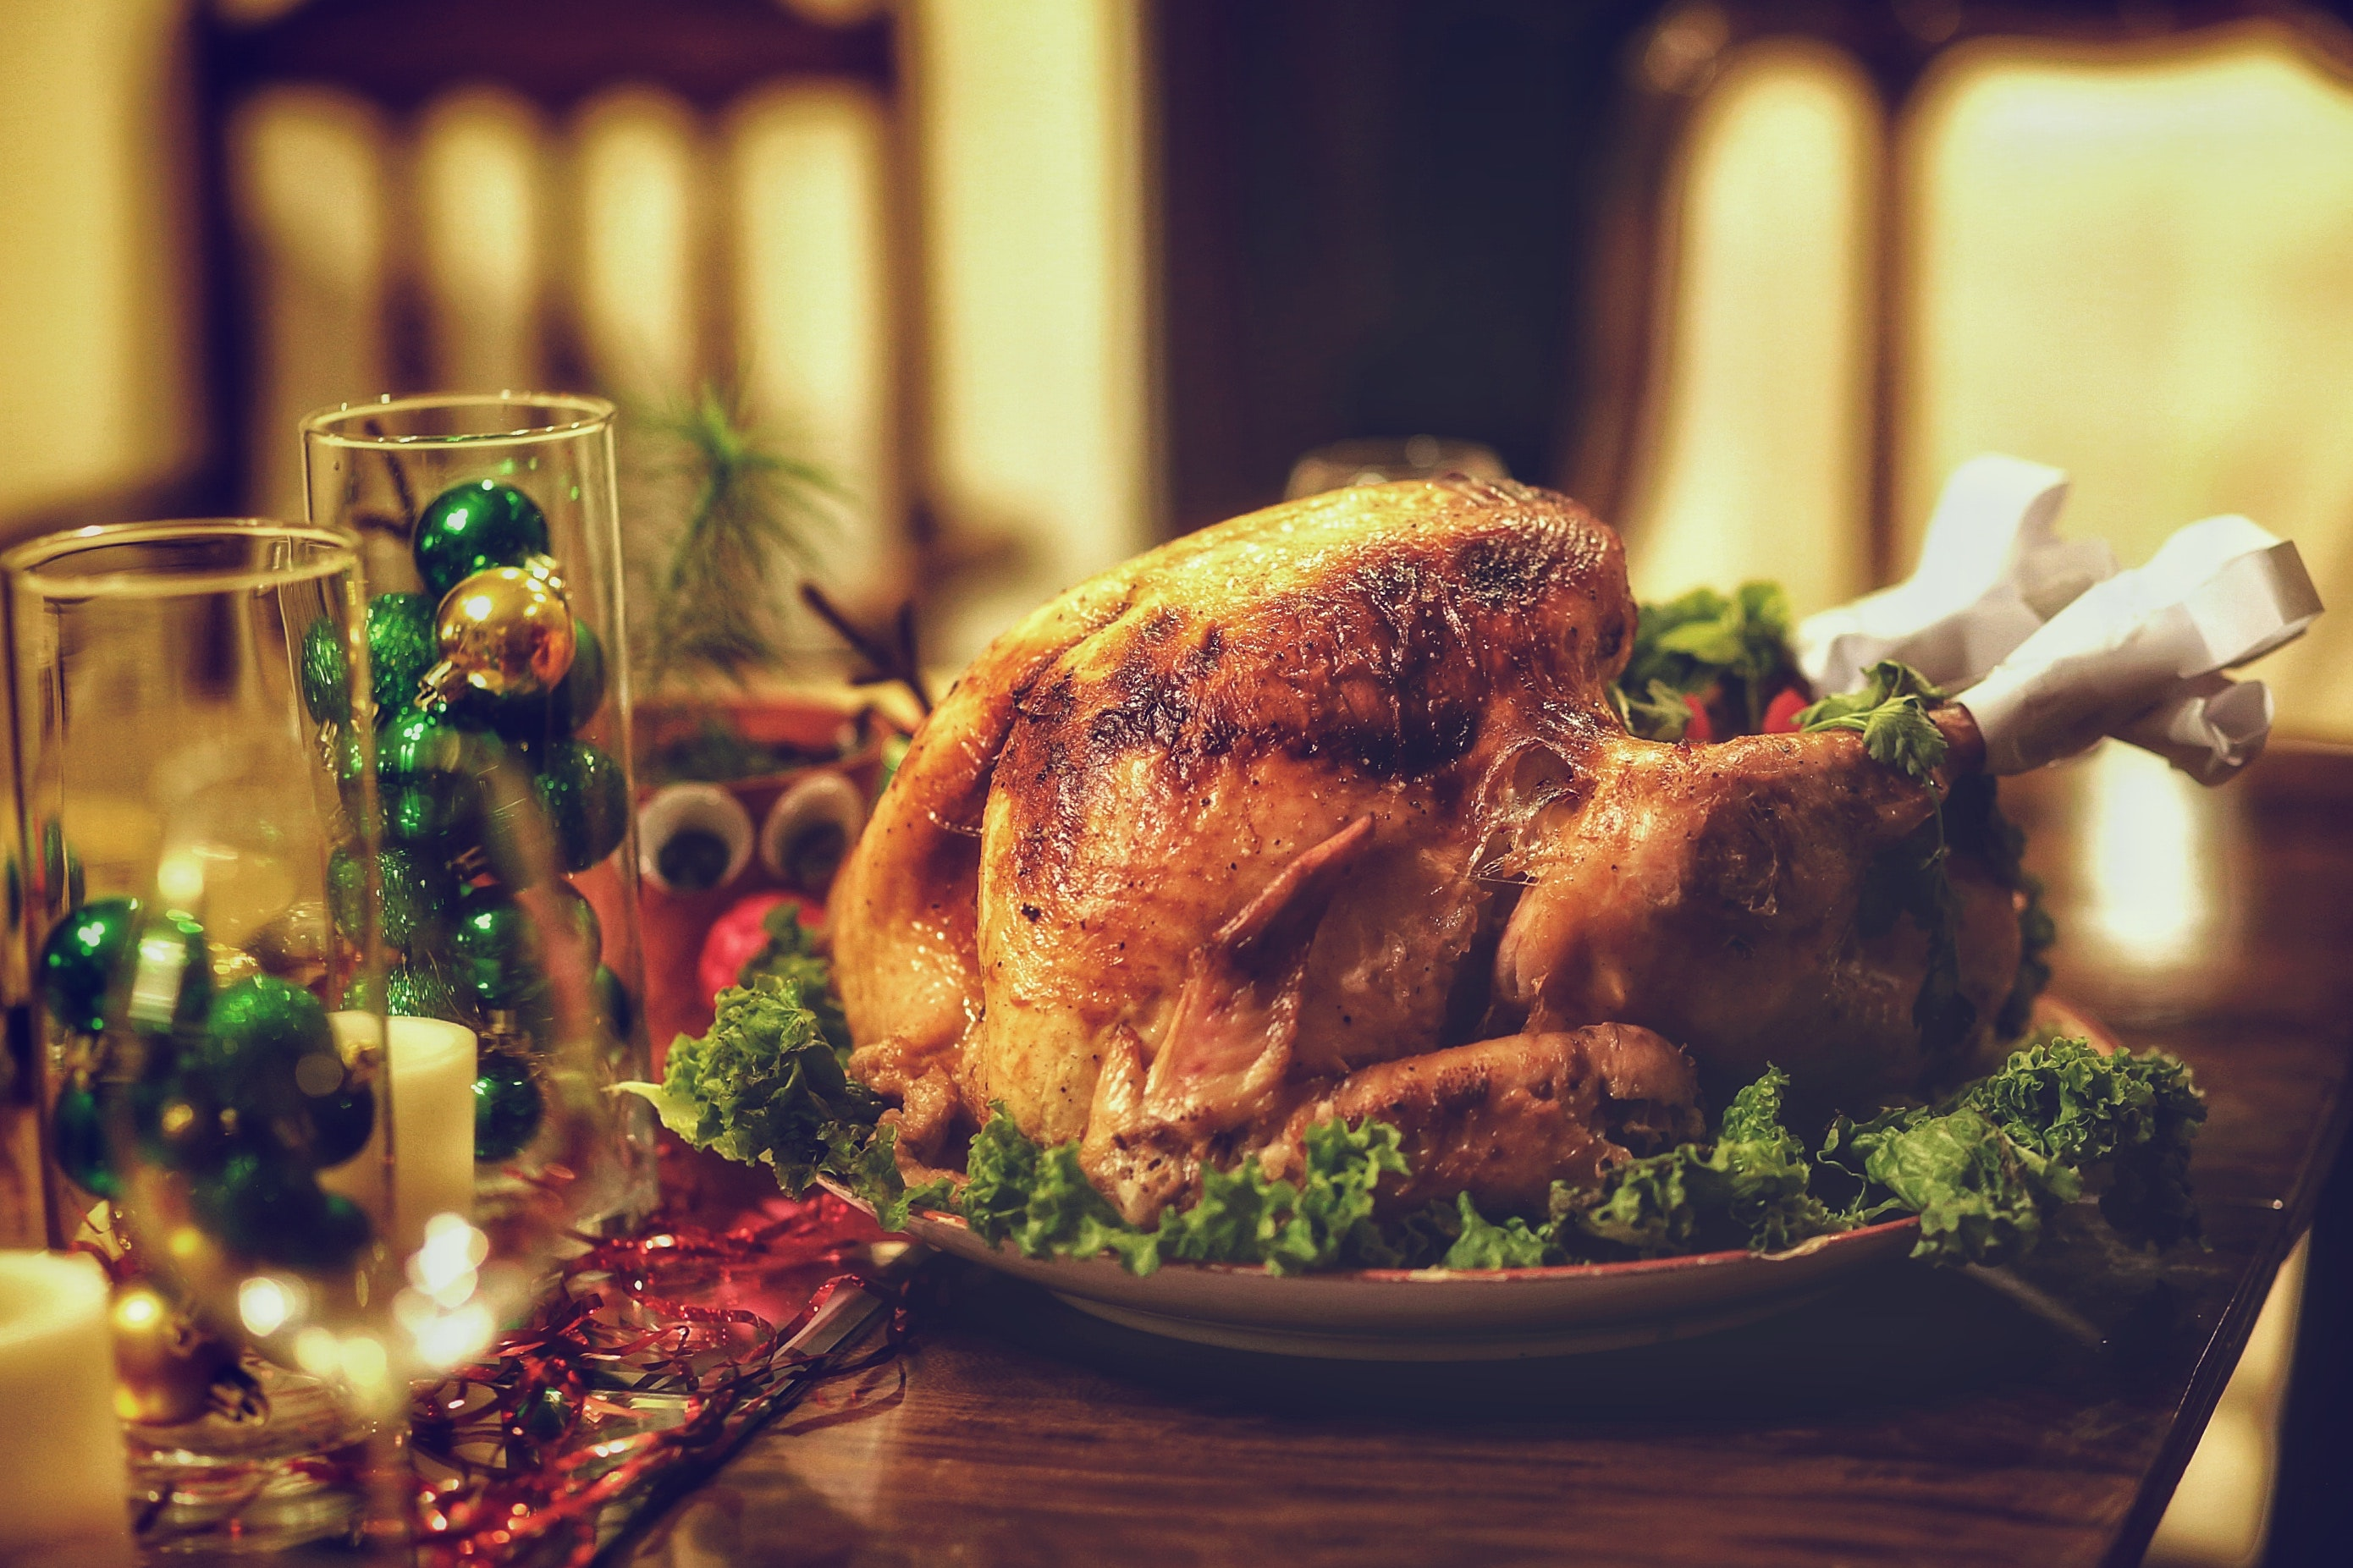 Roast chicken sat on a festively decorated table, complete with red and green decorations, candles and wine glasses